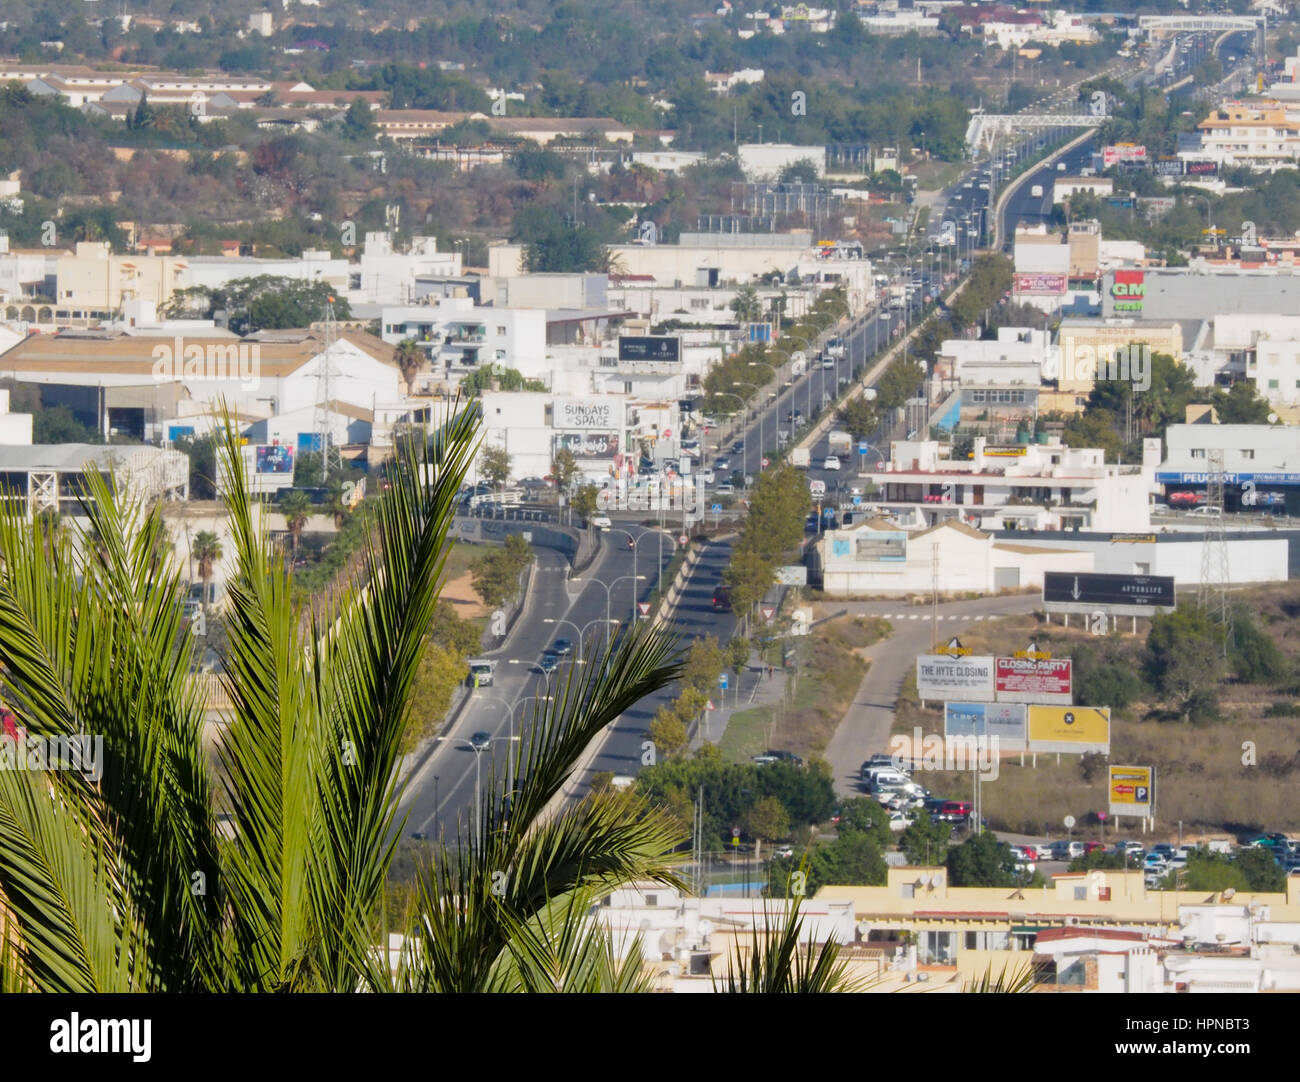 AERIEL ELEVATED VIEW LOOKING INLAND FROM  IBIZA TOWN - Stock Image